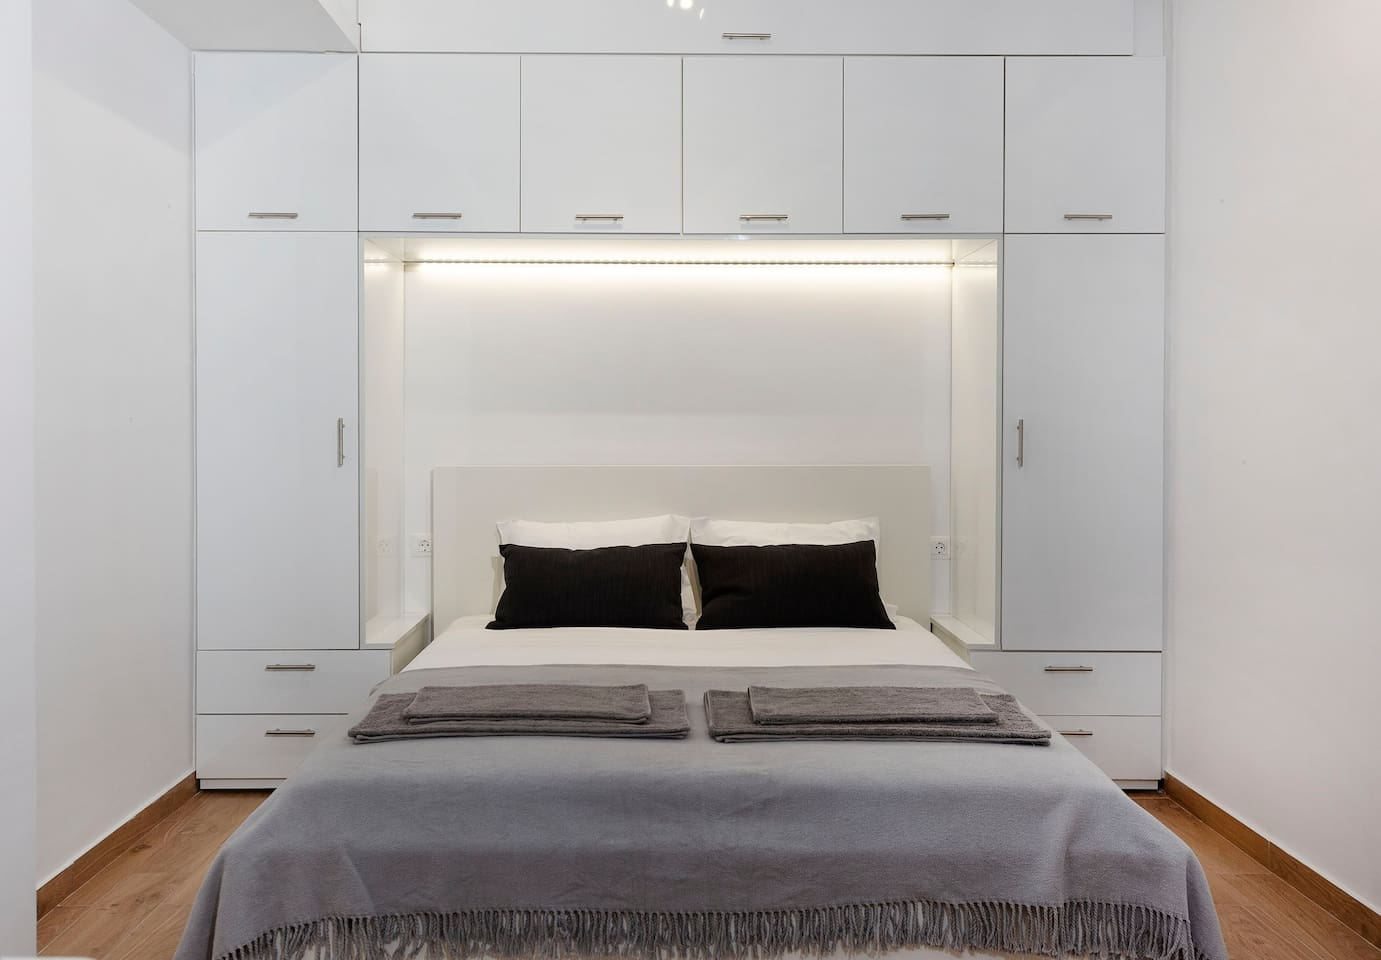 Double bed and closets